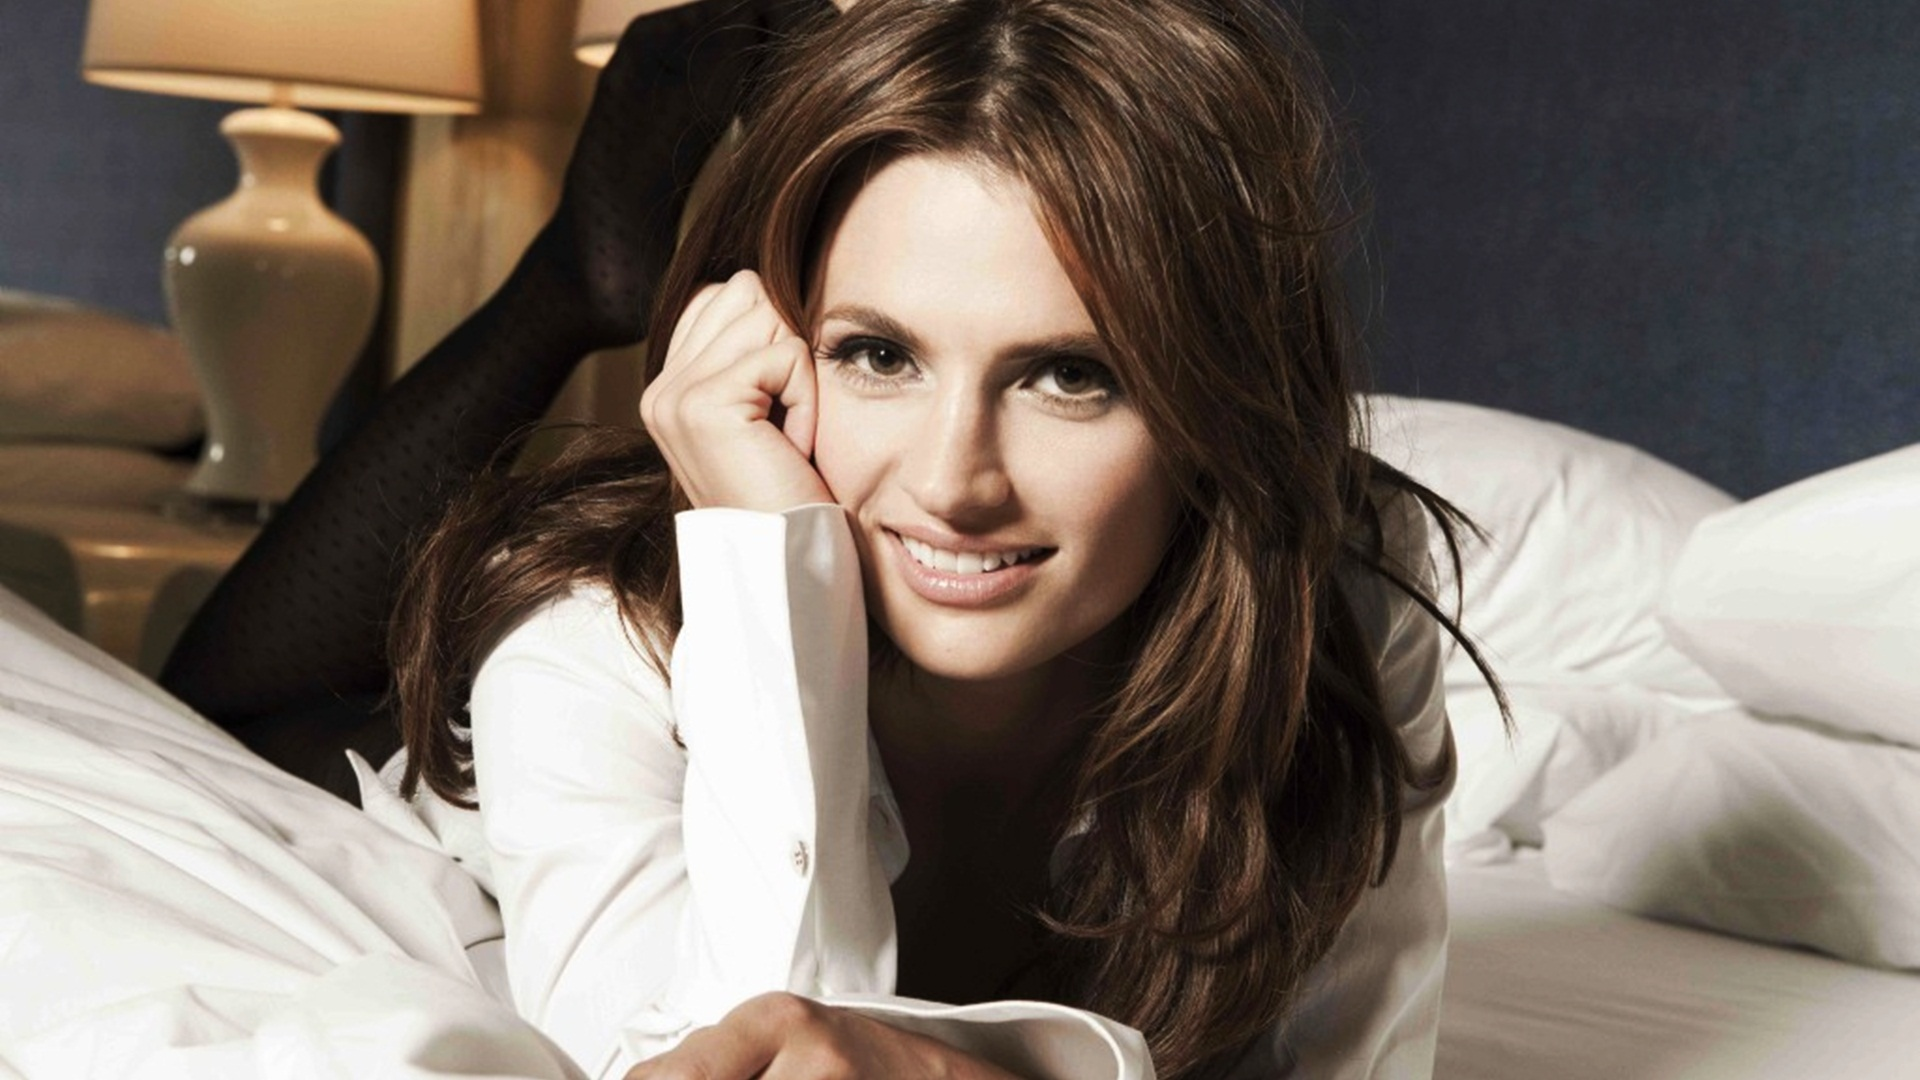 stana katic actress wallpaper - photo #29